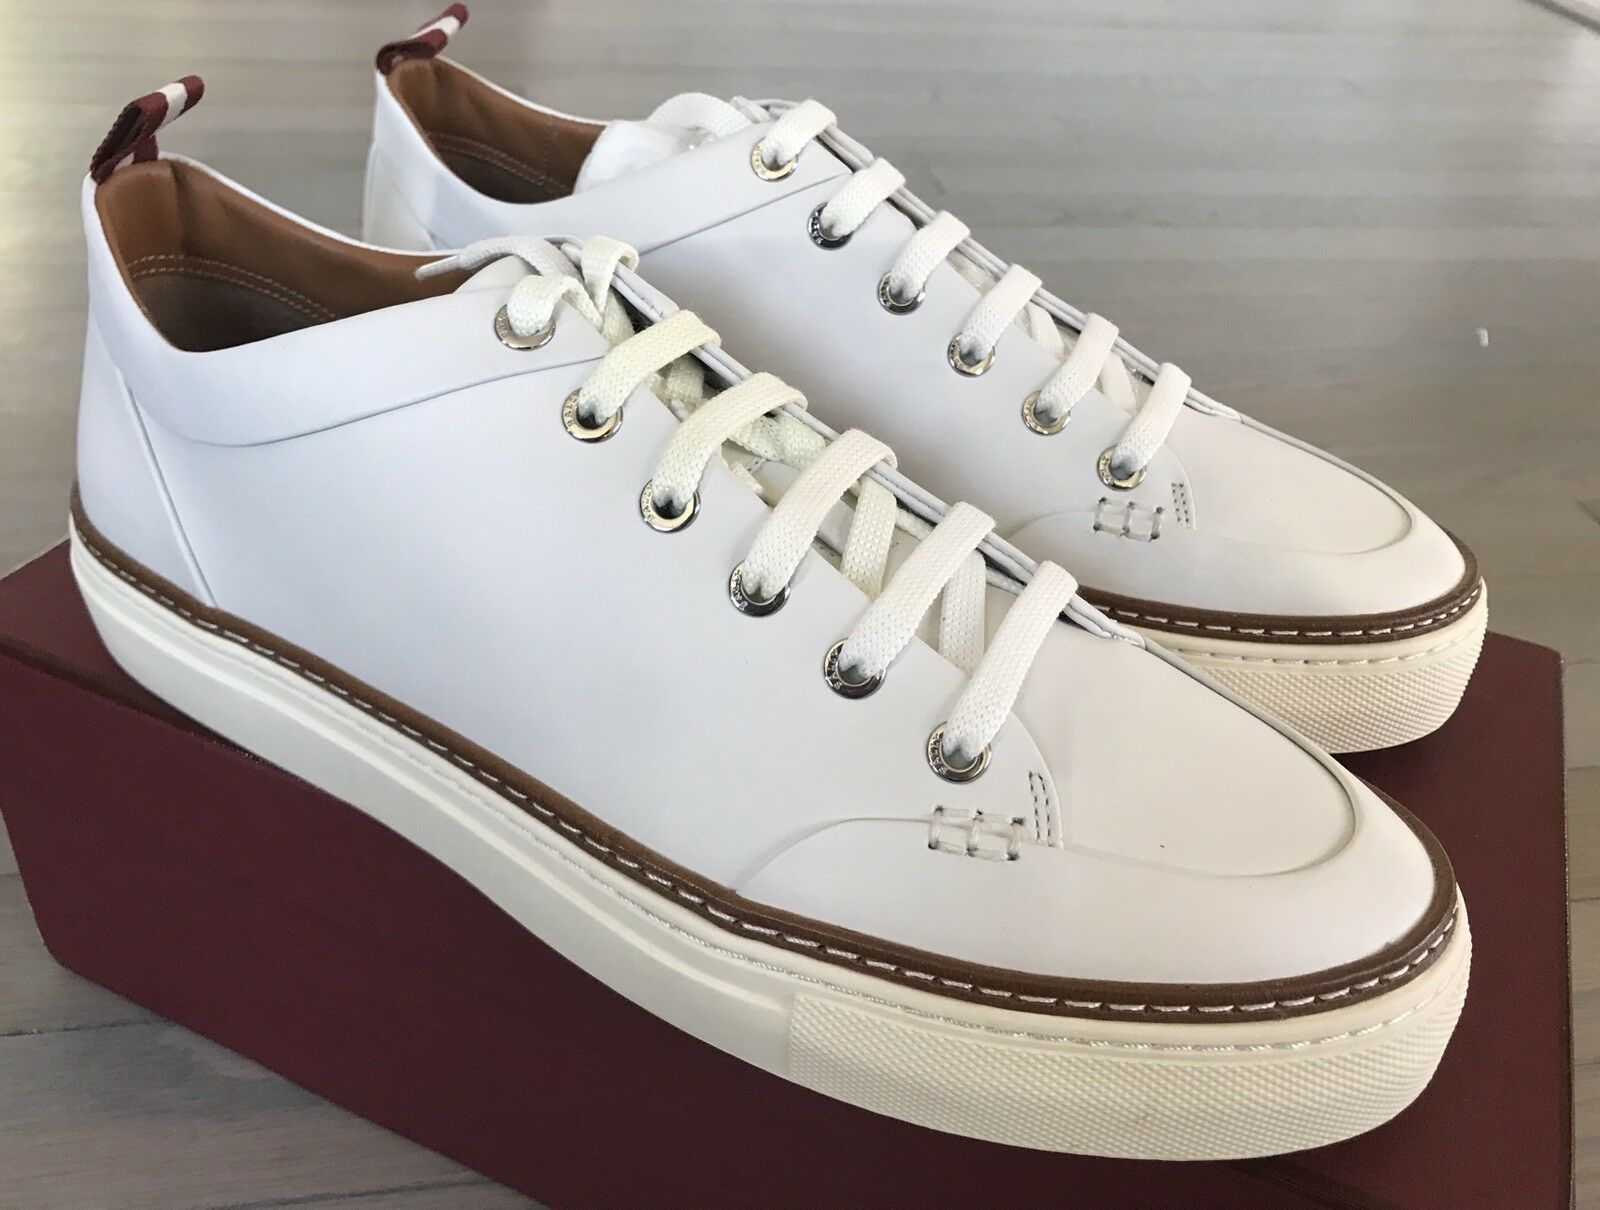 Bally Hernando White Leather SNEAKERS